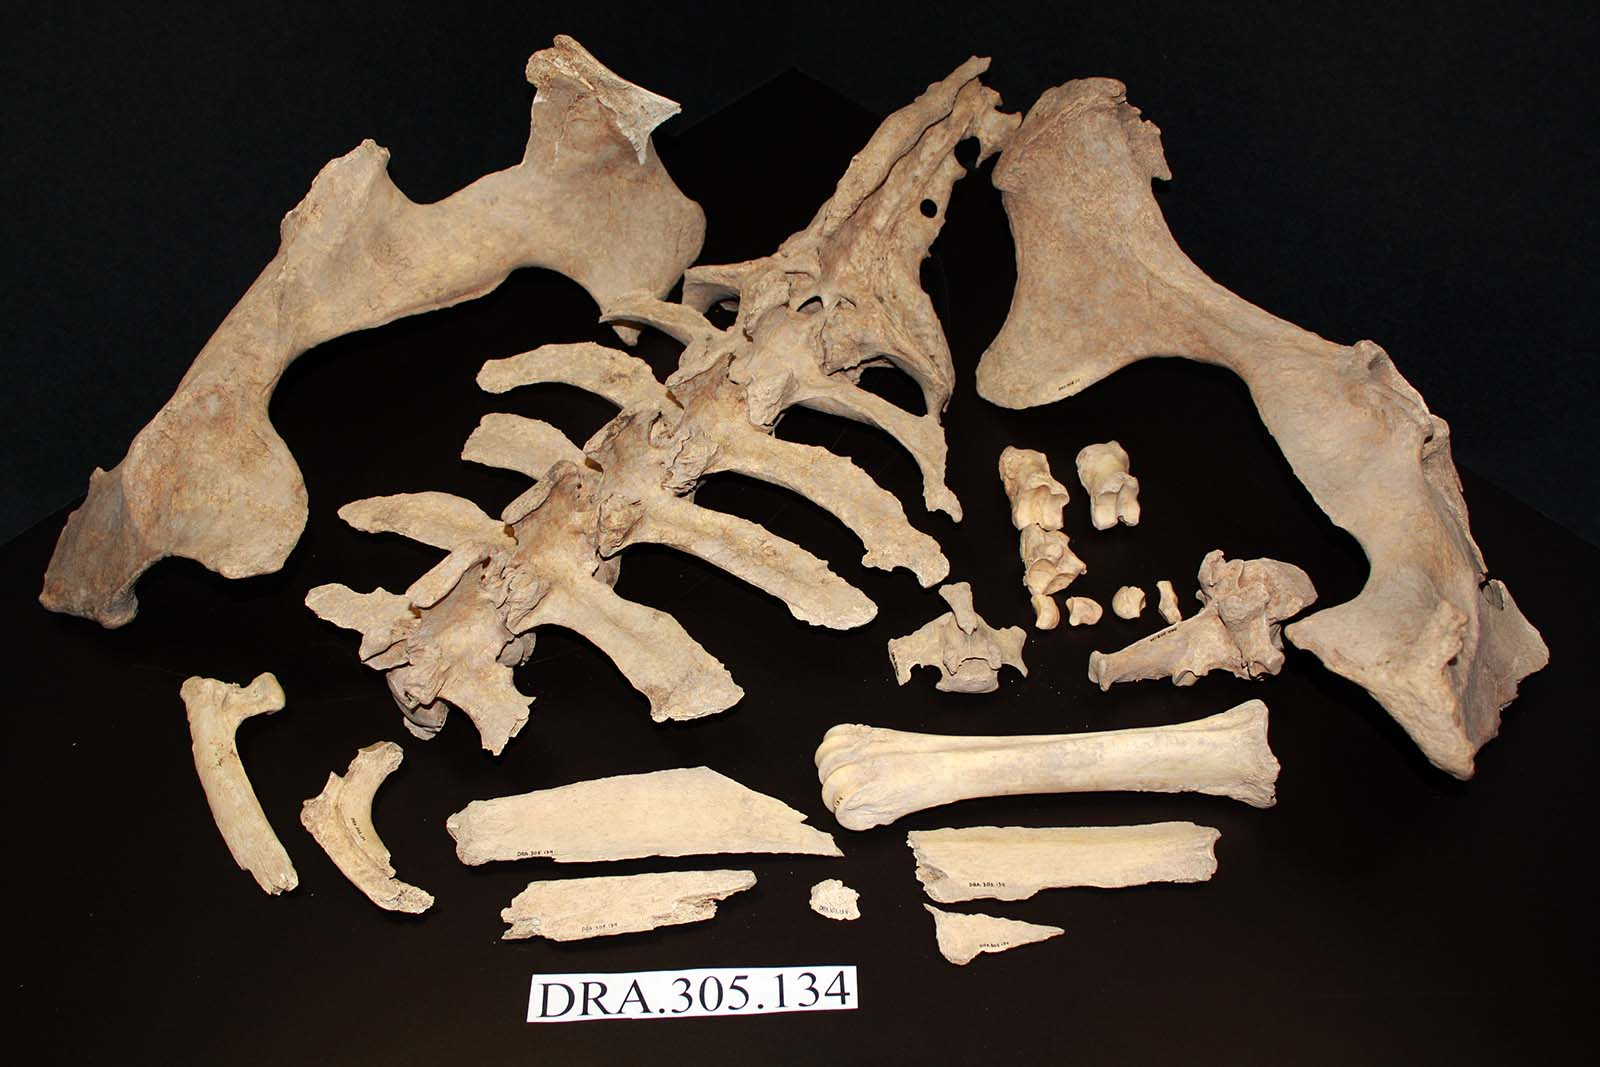 A Treasure from Our West: Partial bison skeleton. DRA.305.134